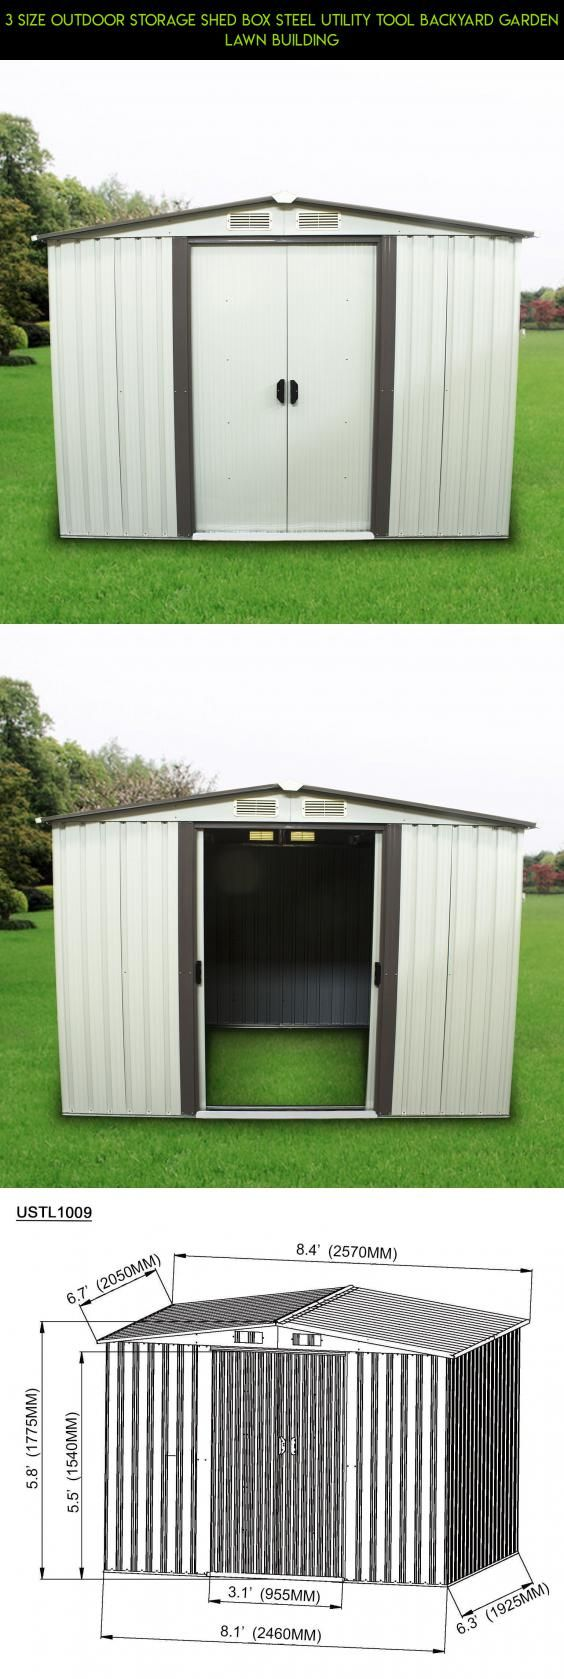 3 Size Outdoor Storage Shed Box Steel Utility Tool Backyard Garden Lawn Building #kit #technology #products #8 #plans #drone #gadgets #parts #shopping #racing #camera #fpv #tech #box #storage